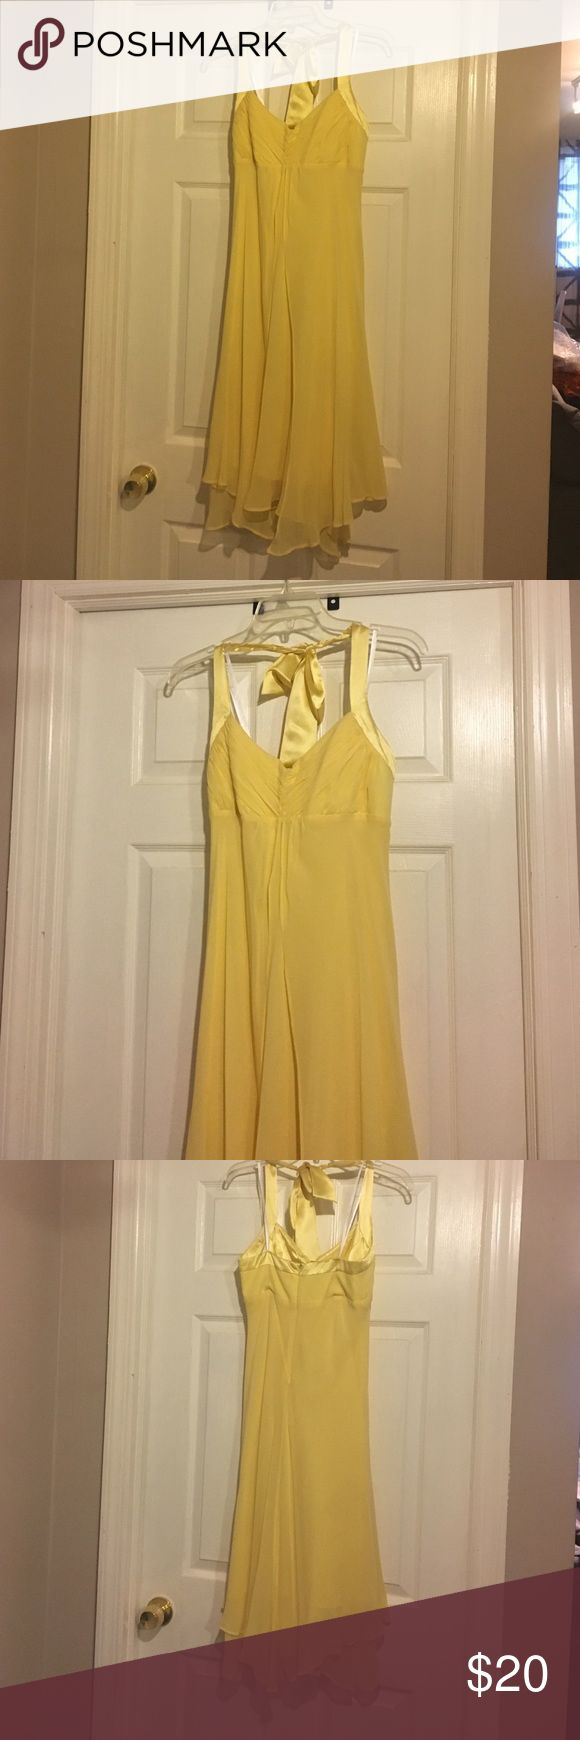 Donna Ricco Yellow Cocktail/Prom Dress. Size 4 Flowing, yellow Donna Ricco dress size 4. Worn once and in good condition. Donna Ricco Dresses